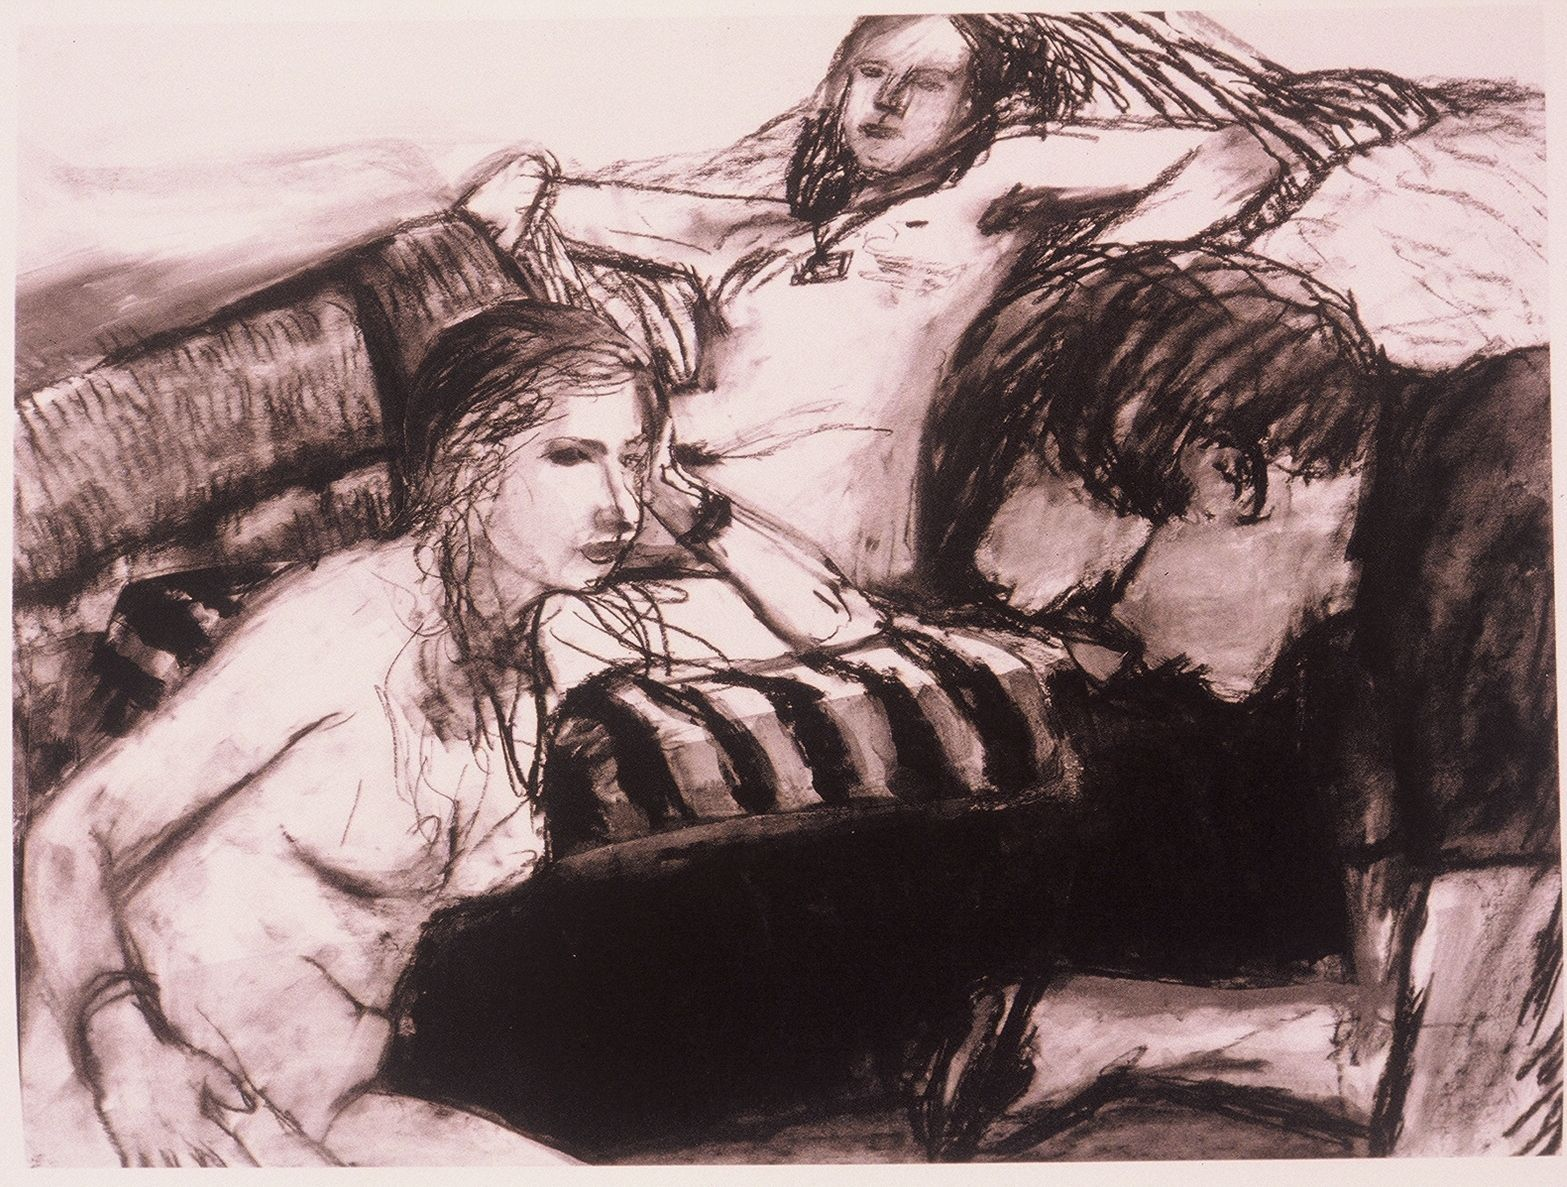 GEORGE LLOYD w Two FIGURE MODELS , a drawing  by Elmer BISCHOFF